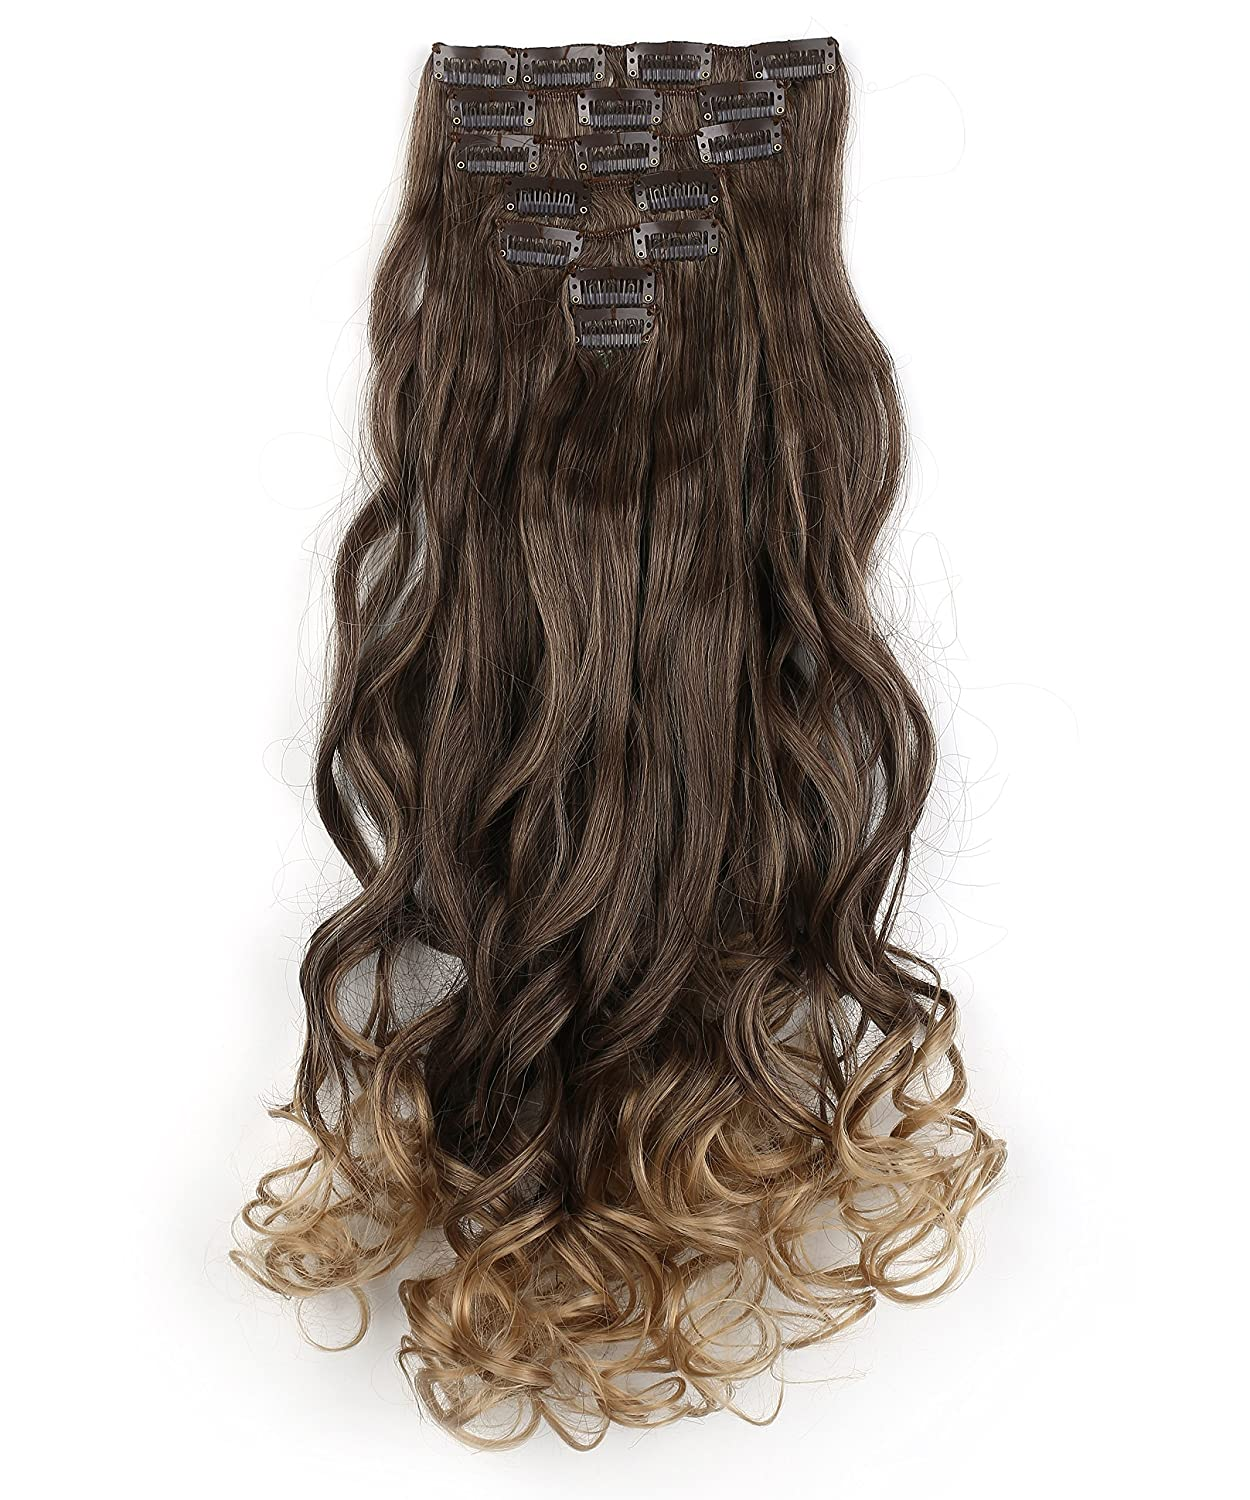 """Onedor 20"""" Curly Full Head Clip in Synthetic Hair Extensions 7pcs 140g (6B10BT25# - Brown to Dirty Blonde Ombre)"""